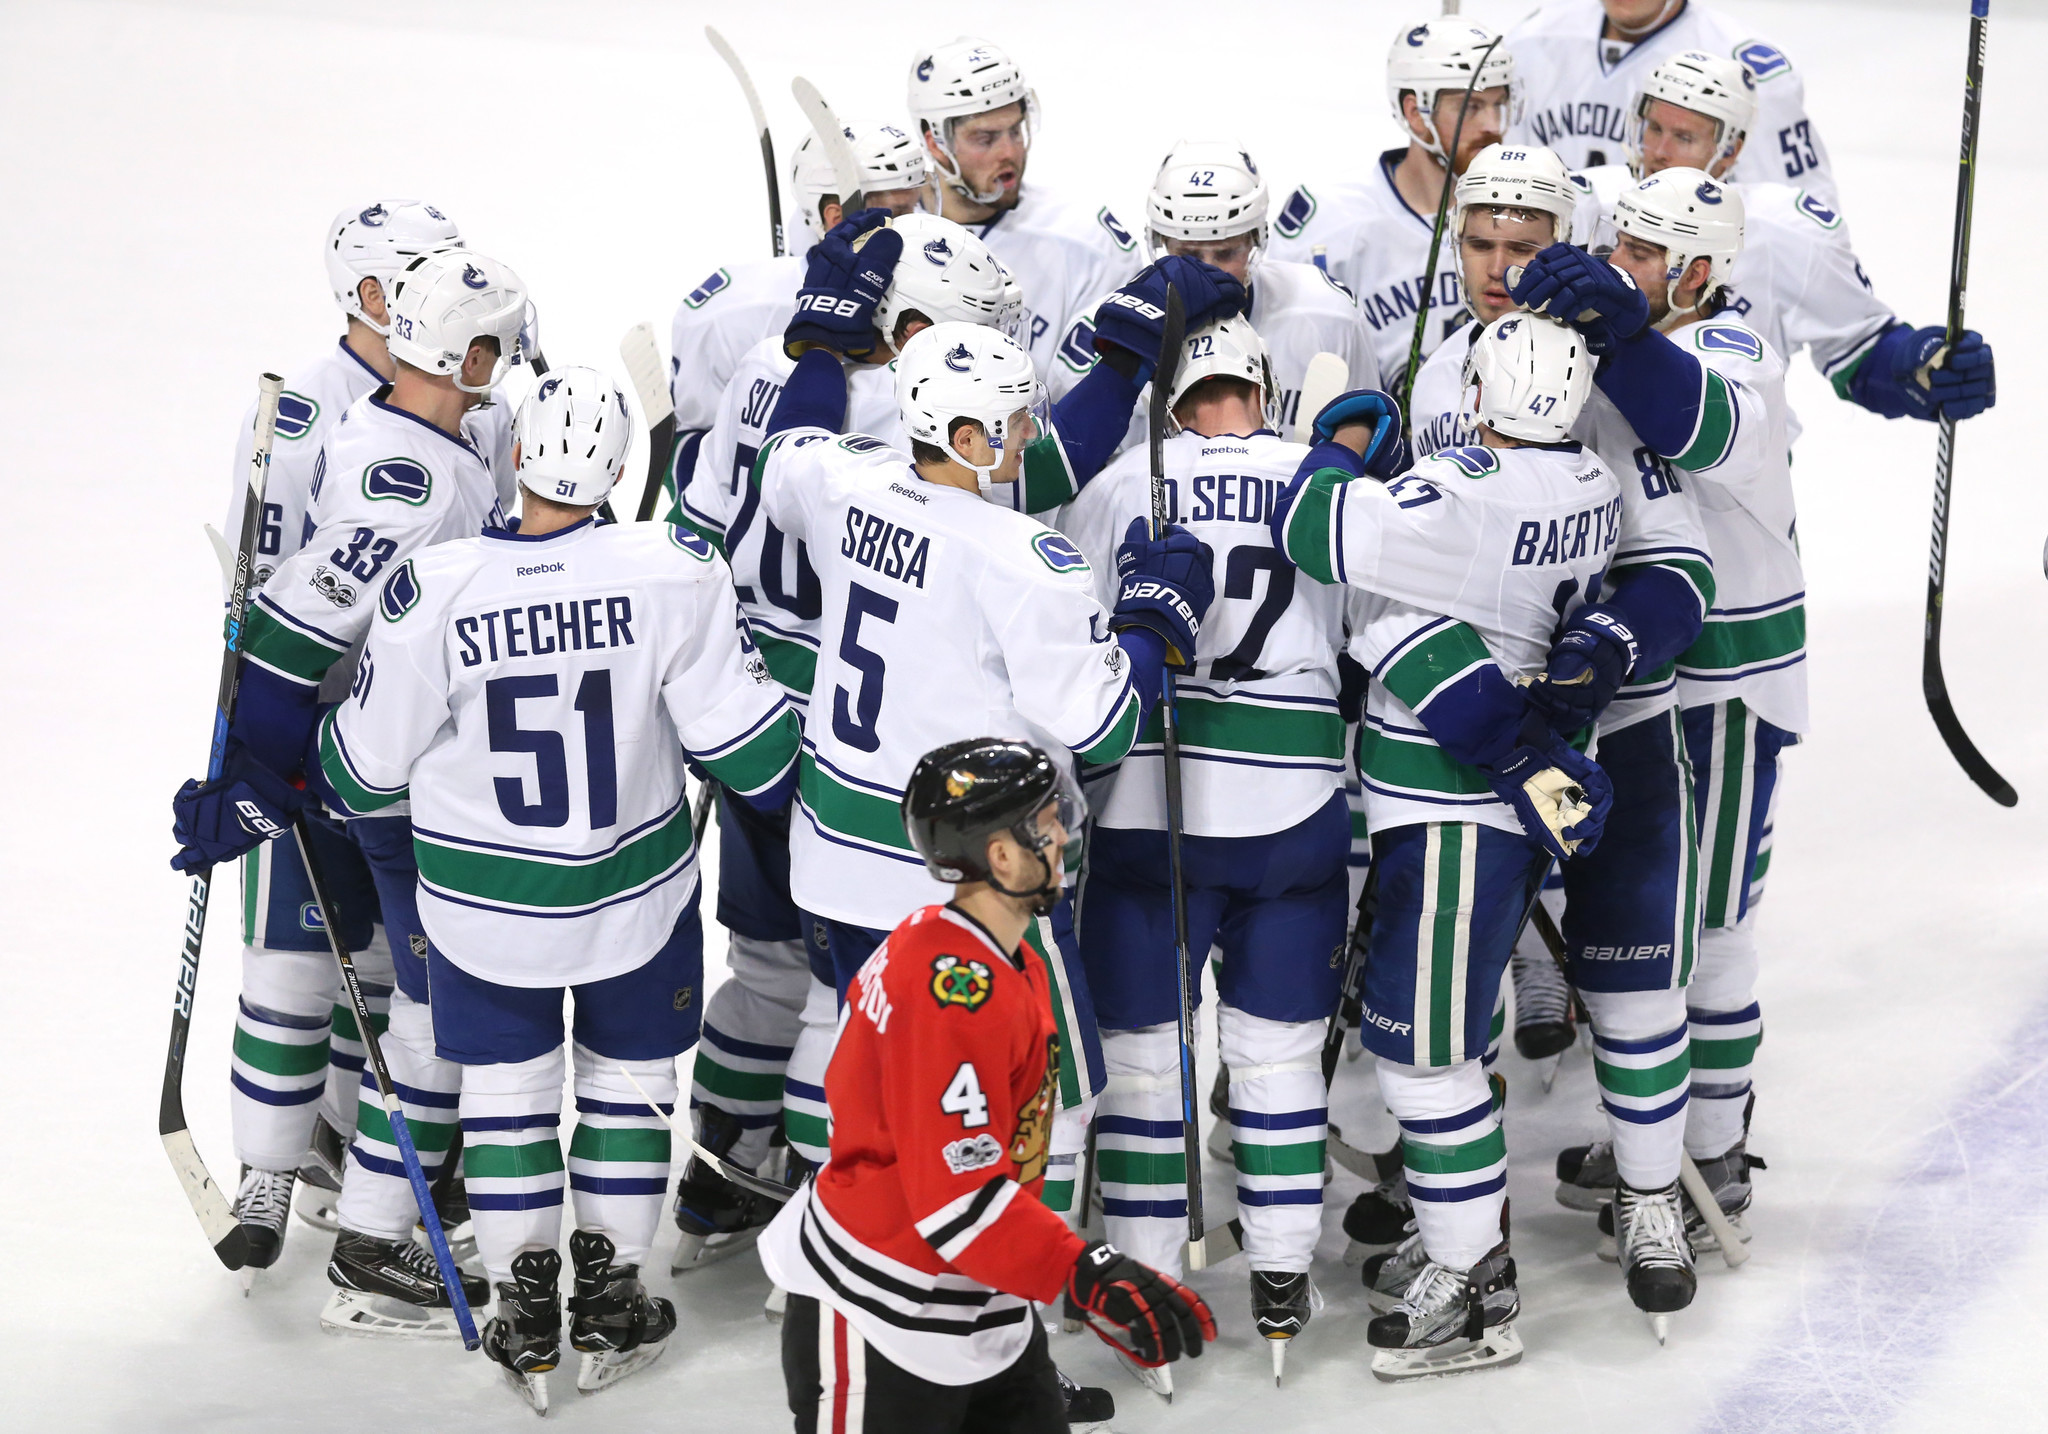 Ct-blackhawks-lose-overtime-canucks-spt-0322-20170321